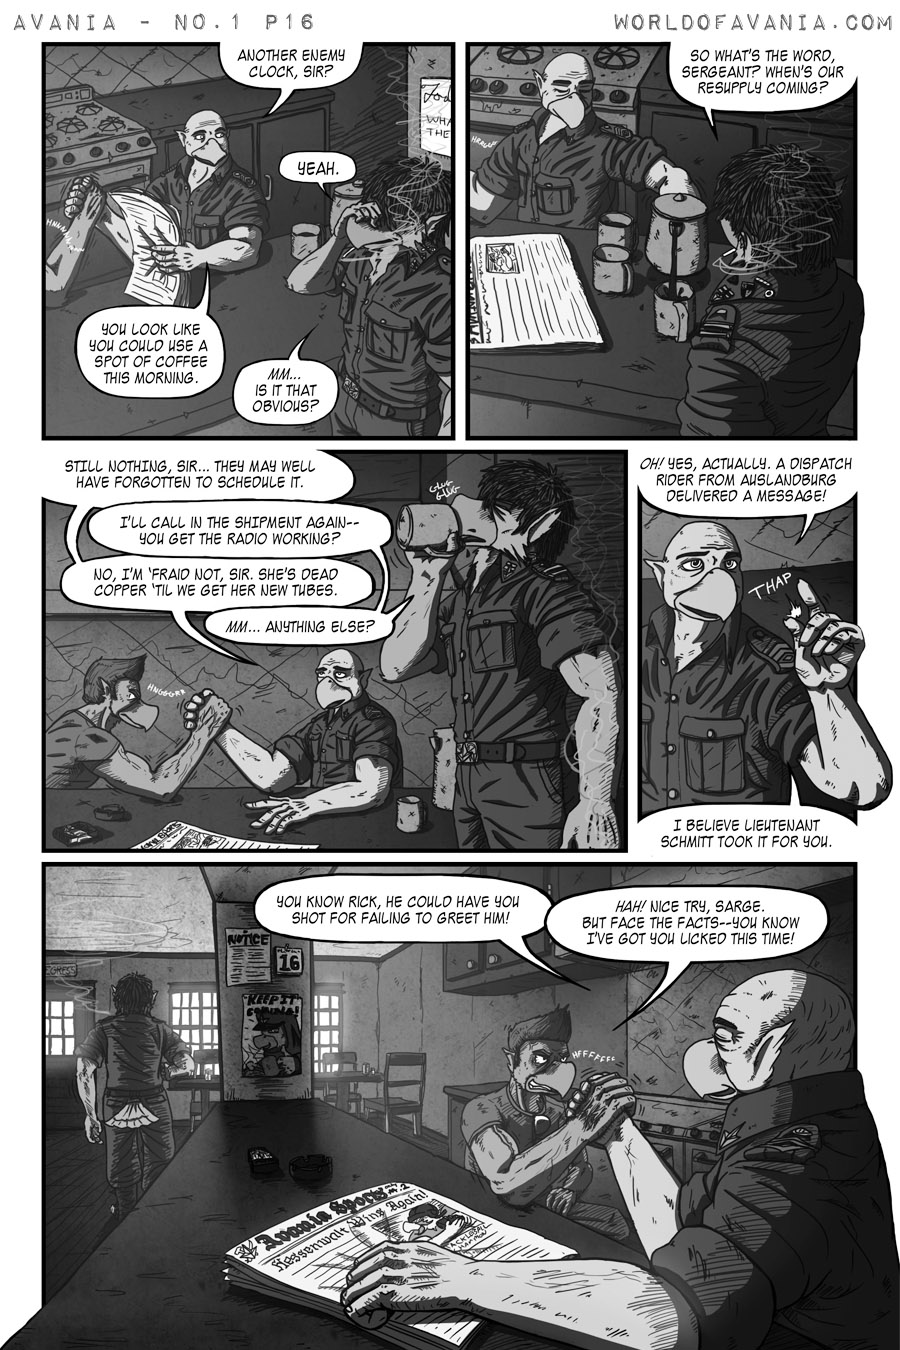 Avania Comic - Issue No.1, Page 16